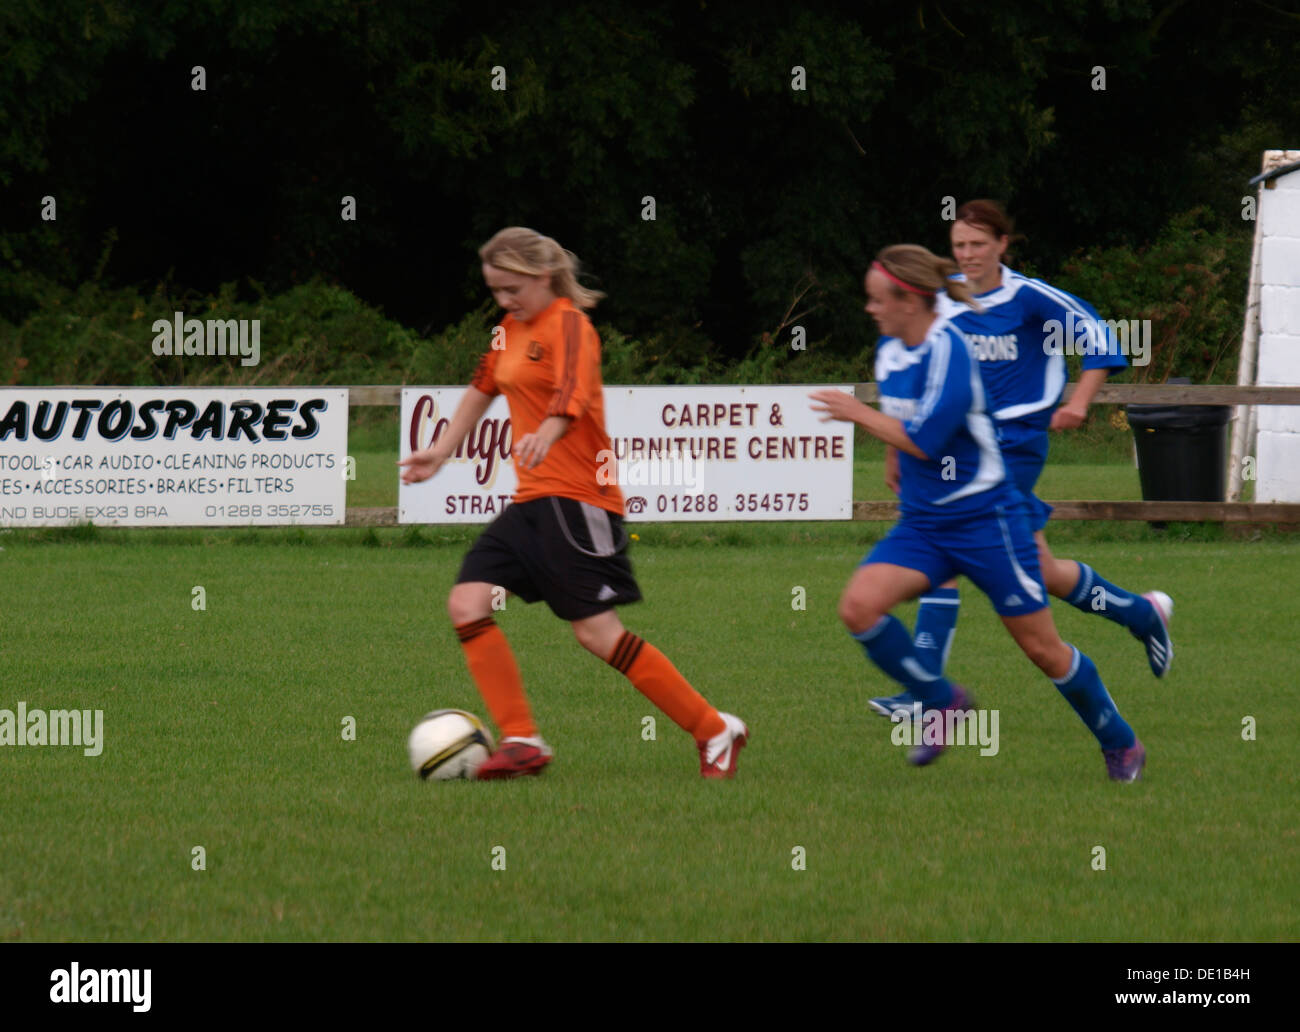 Fast paced action during women's football match, Bude, Cornwall, UK 2013 - Stock Image